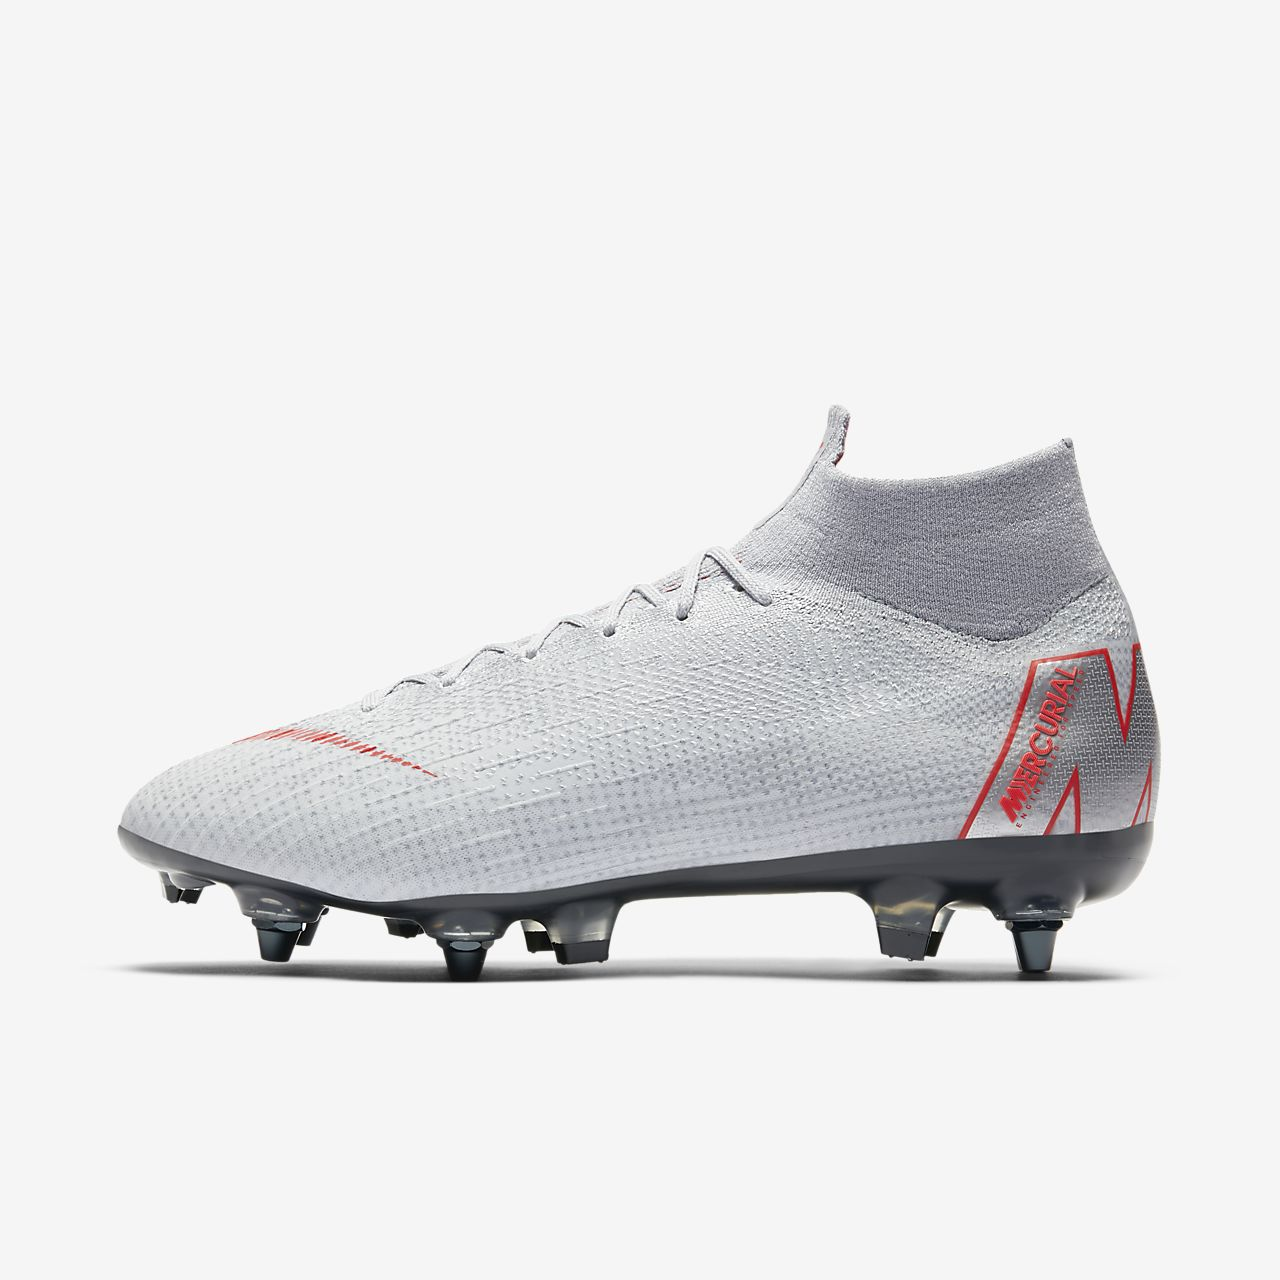 Nike Mercurial Superfly 360 Elite SG-PRO Anti-Clog Soft-Ground ... 41071c0127166